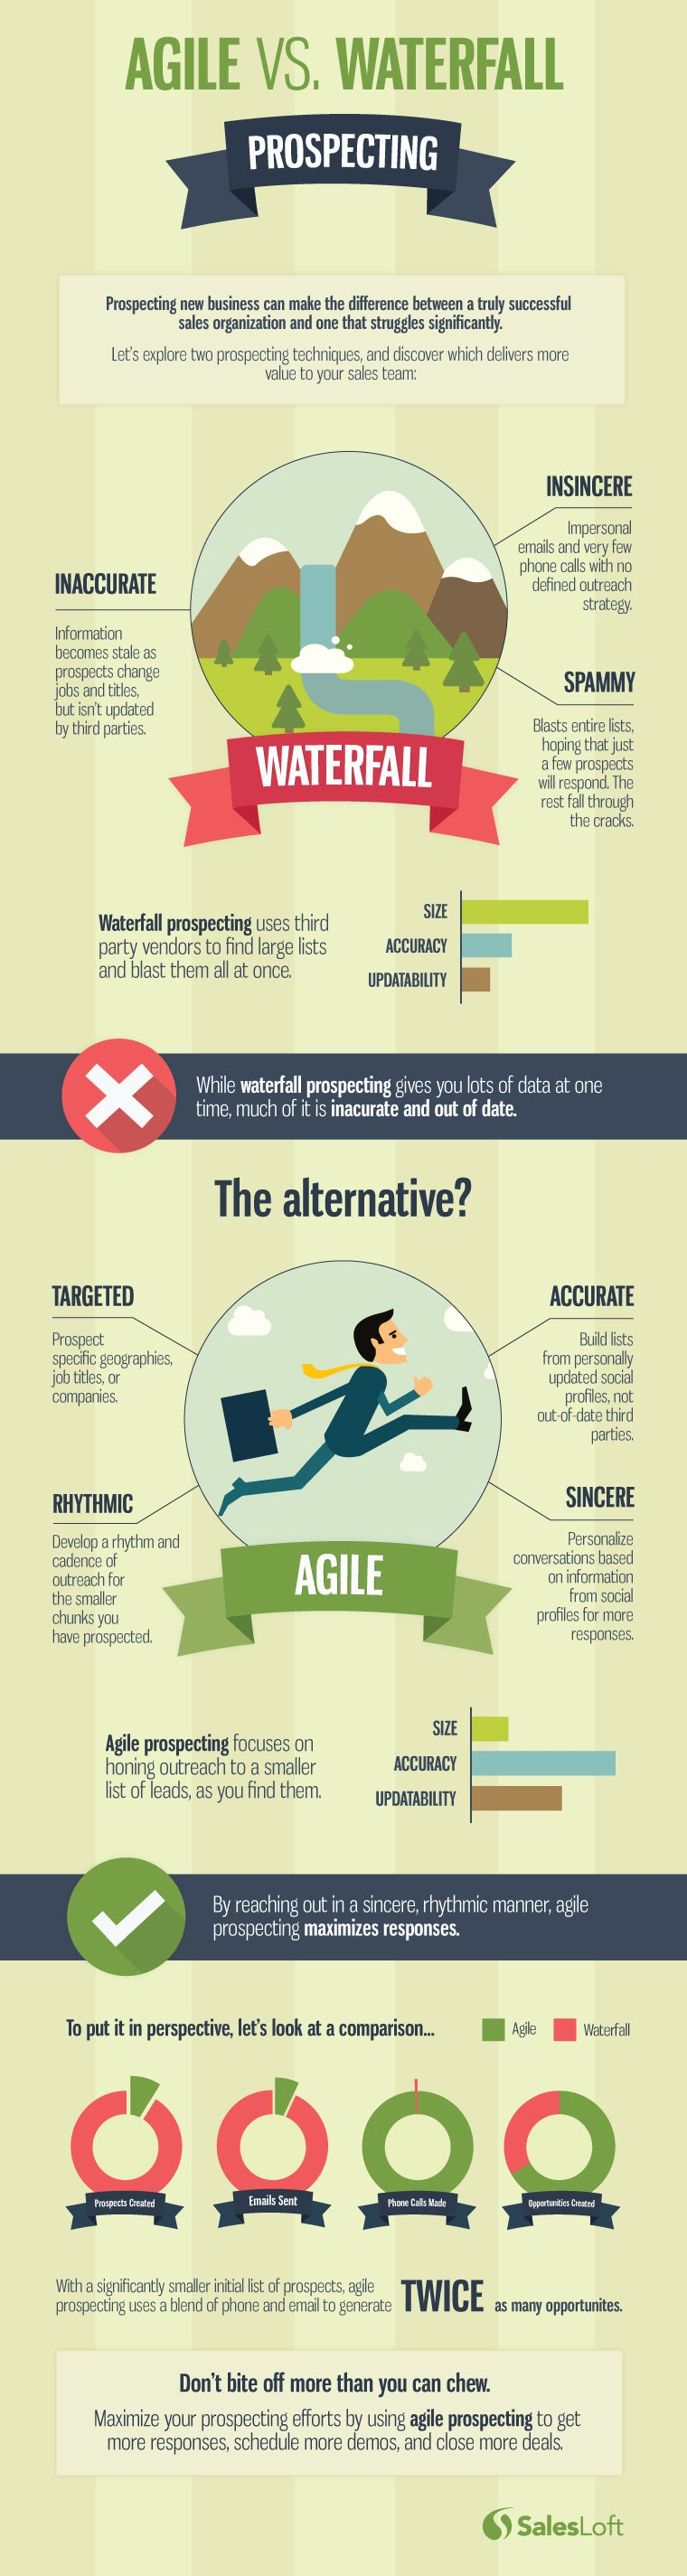 The best prospecting strategy for your business salesloft for When to use agile vs waterfall